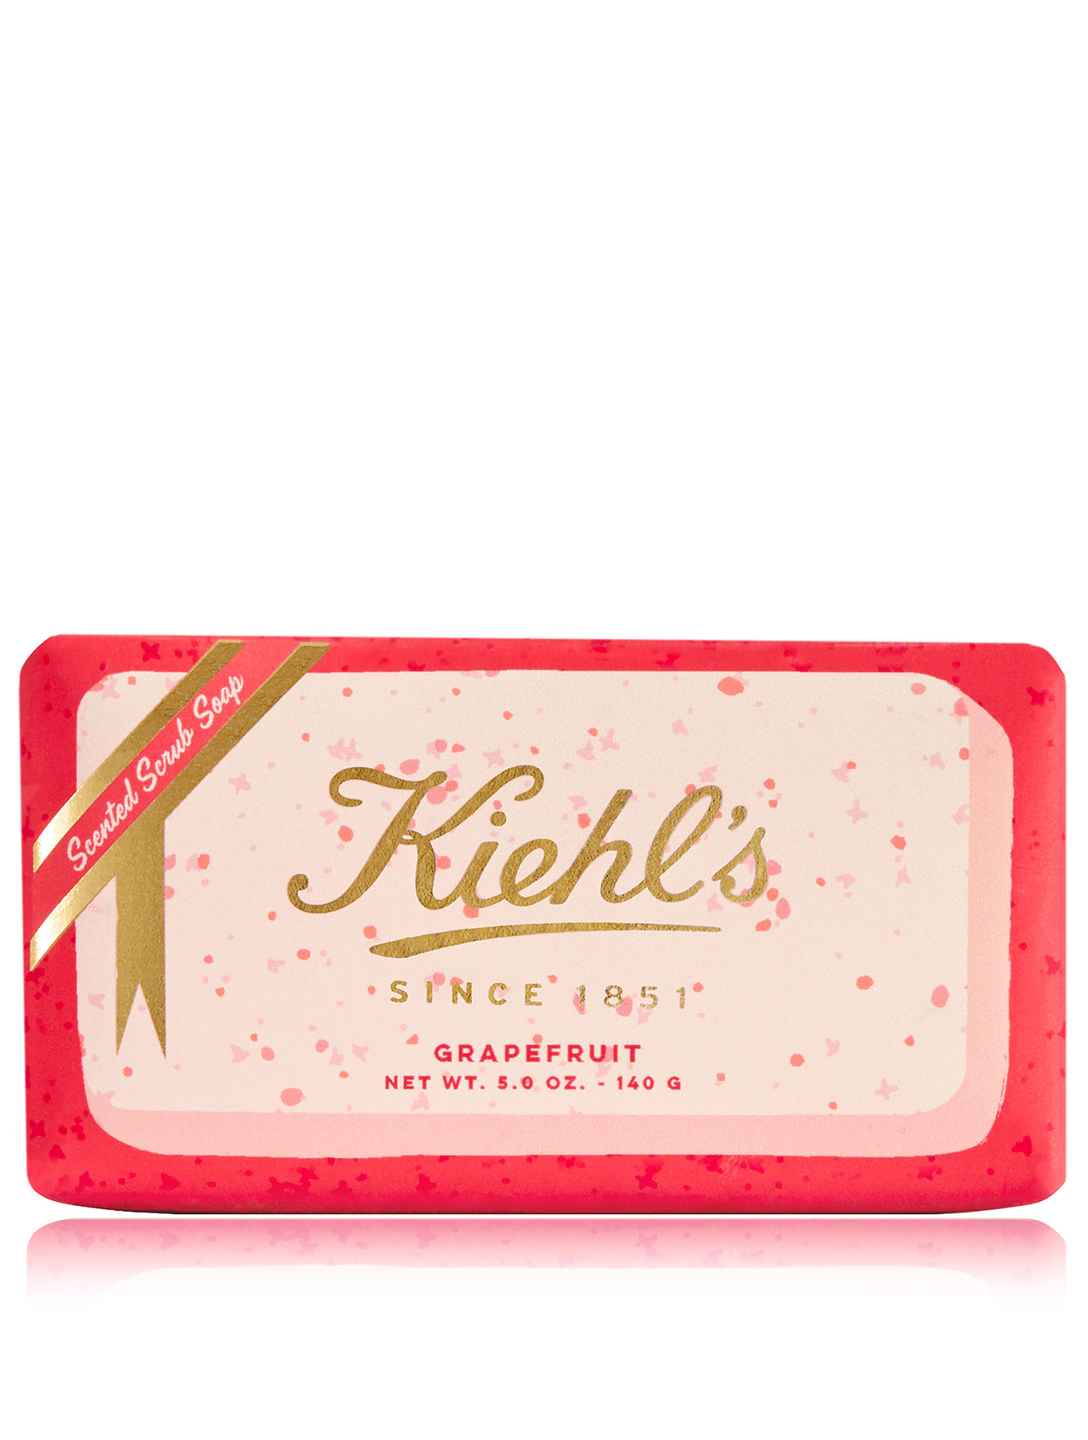 KIEHL'S Grapefruit Gently Exfoliating Body Scrub Soap - Limited Edition Beauty